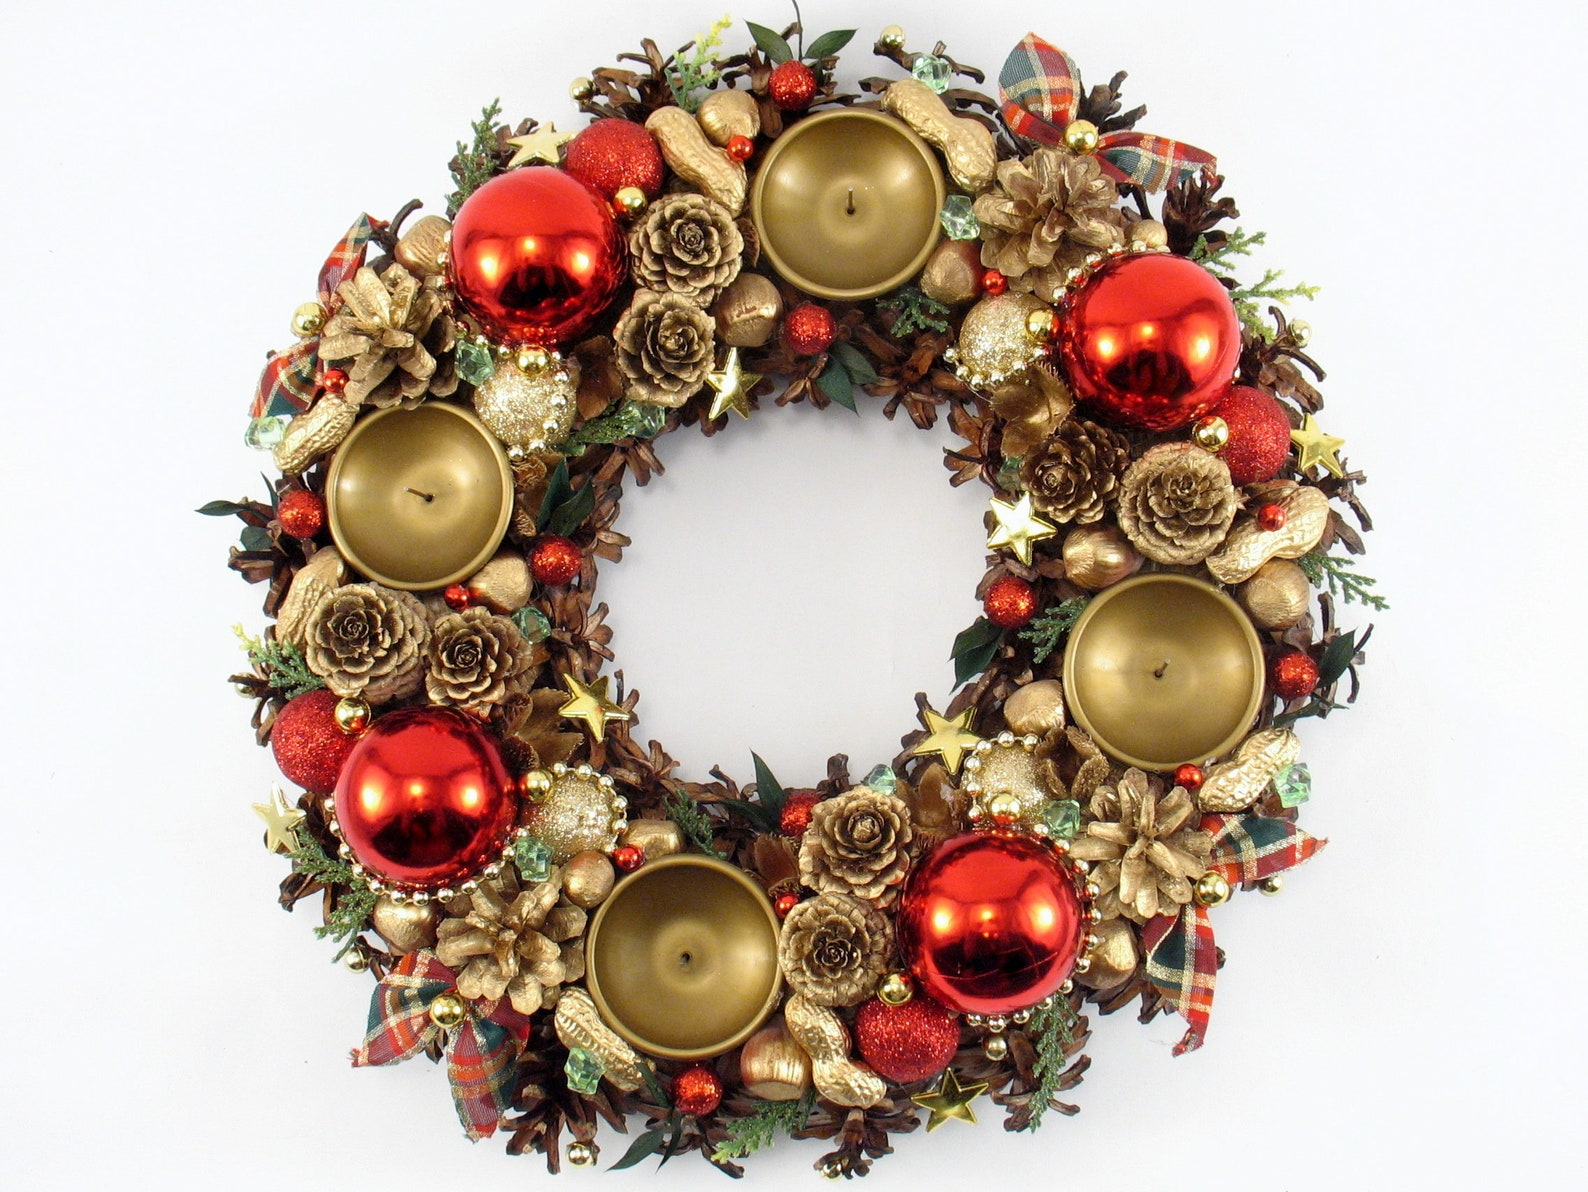 Advent Wreath, Red-golden Ornament Wreath, Christmas Table Decor, Christmas Wreath, Xmas Kranz, Kränze,